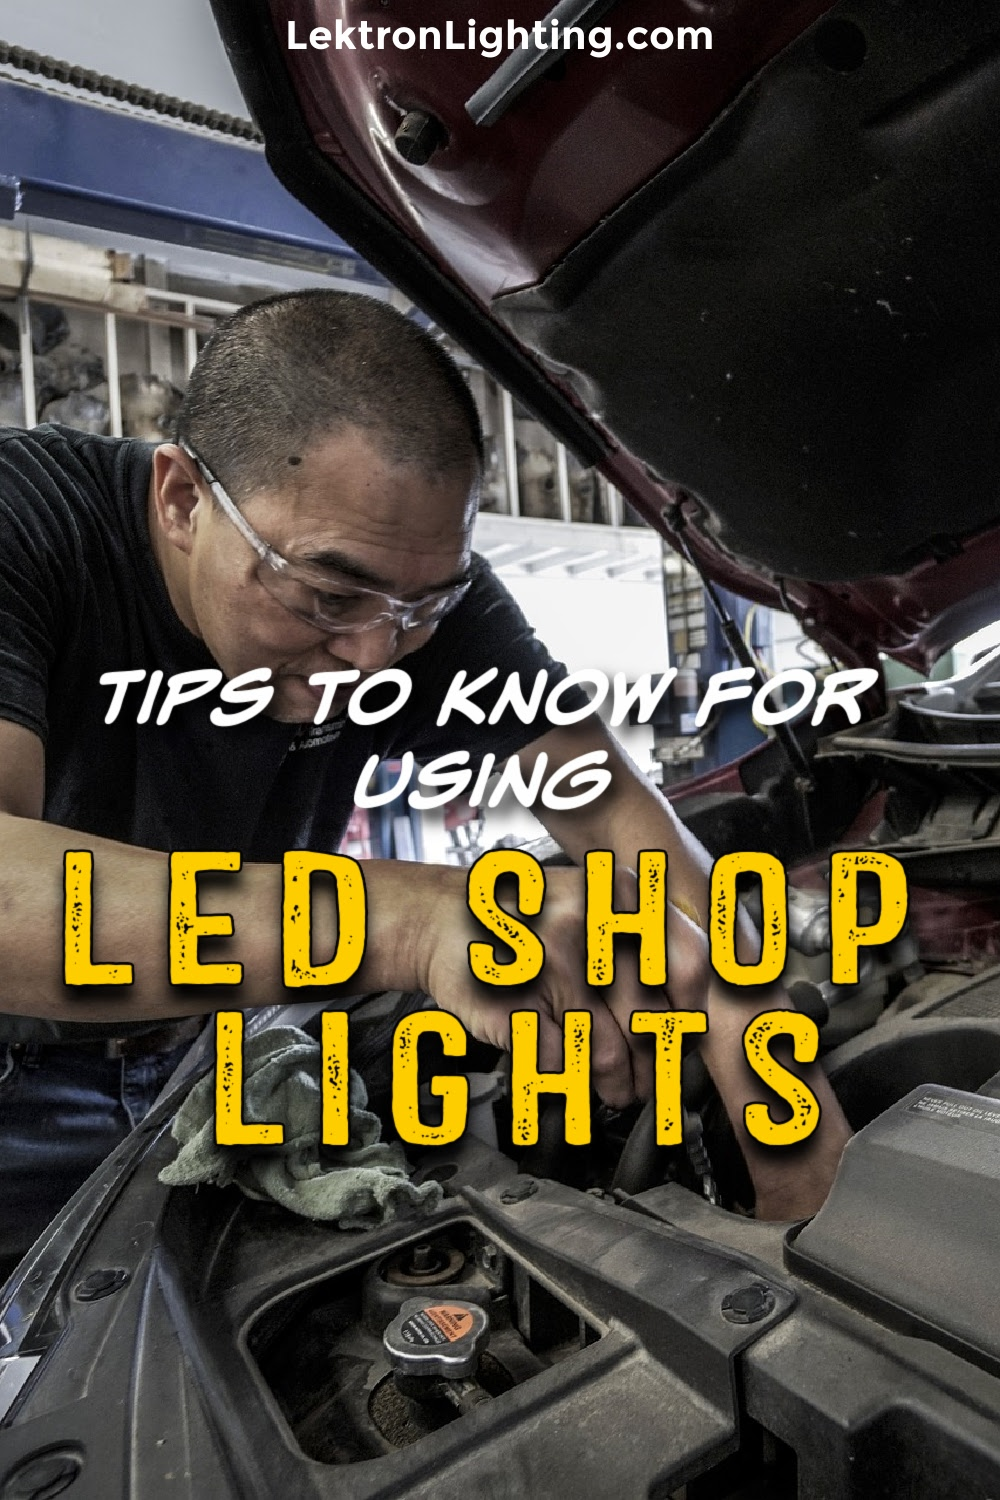 Tips to Know for LED Shop Lights